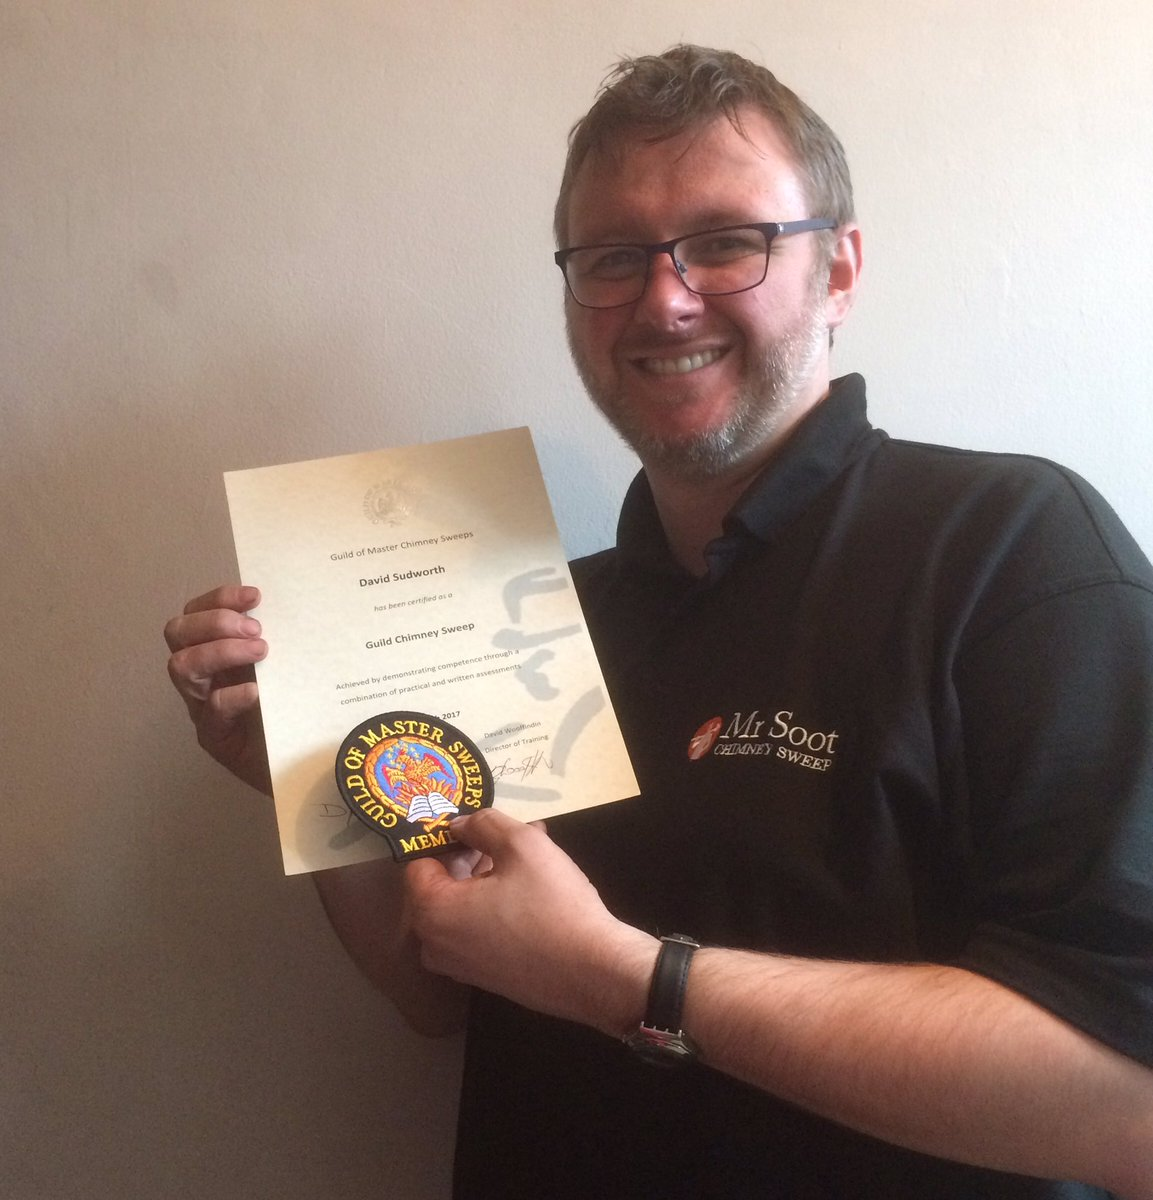 Good news from Mr Soot HQ this week - we are now certified by the Guil...